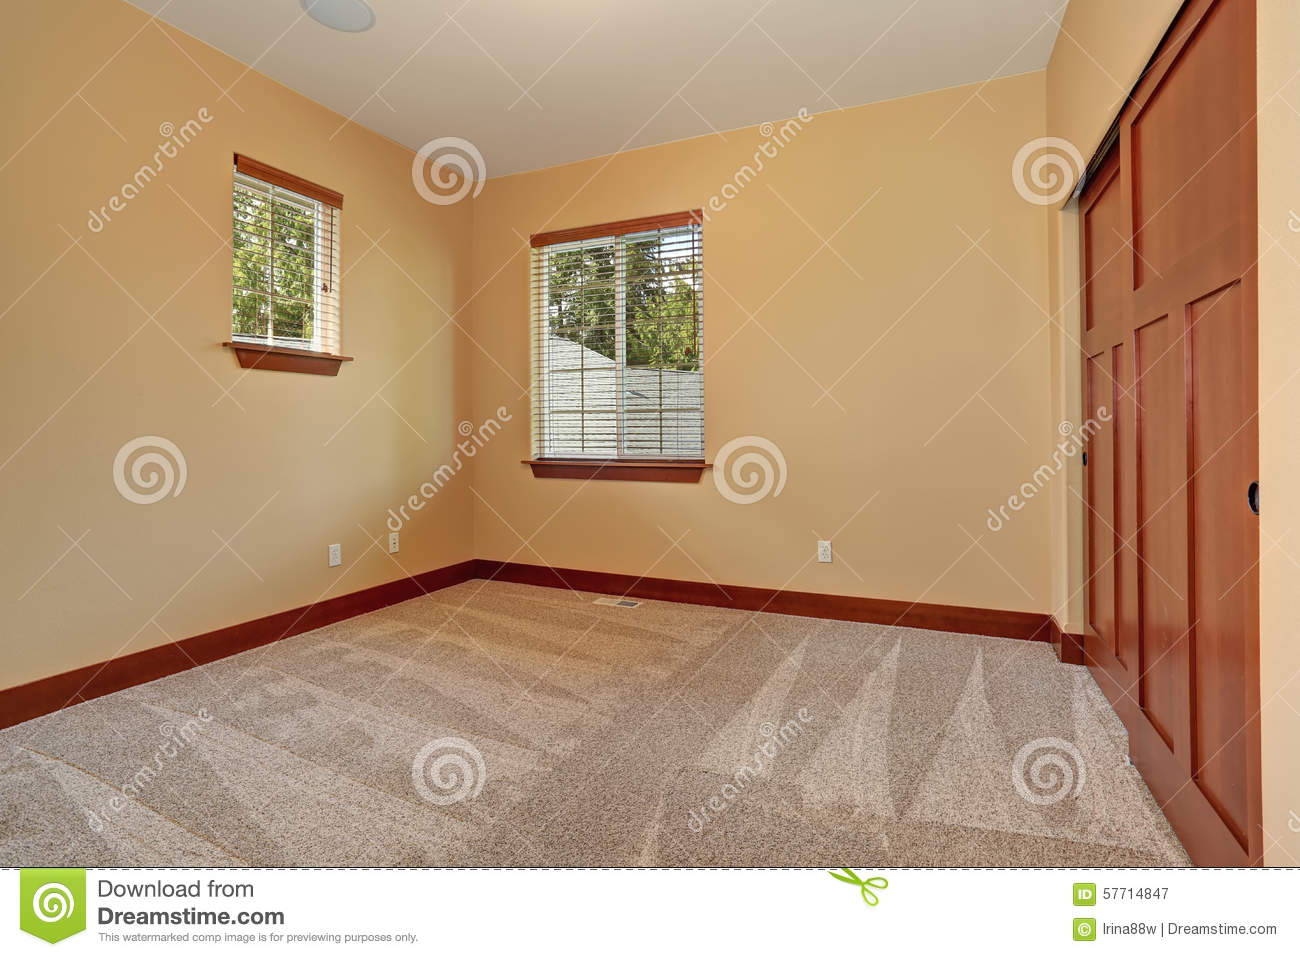 Perfect Unfurnished Room With Beige Interior Paint. Stock Image   Image Of Real,  Remodeled: 57714847